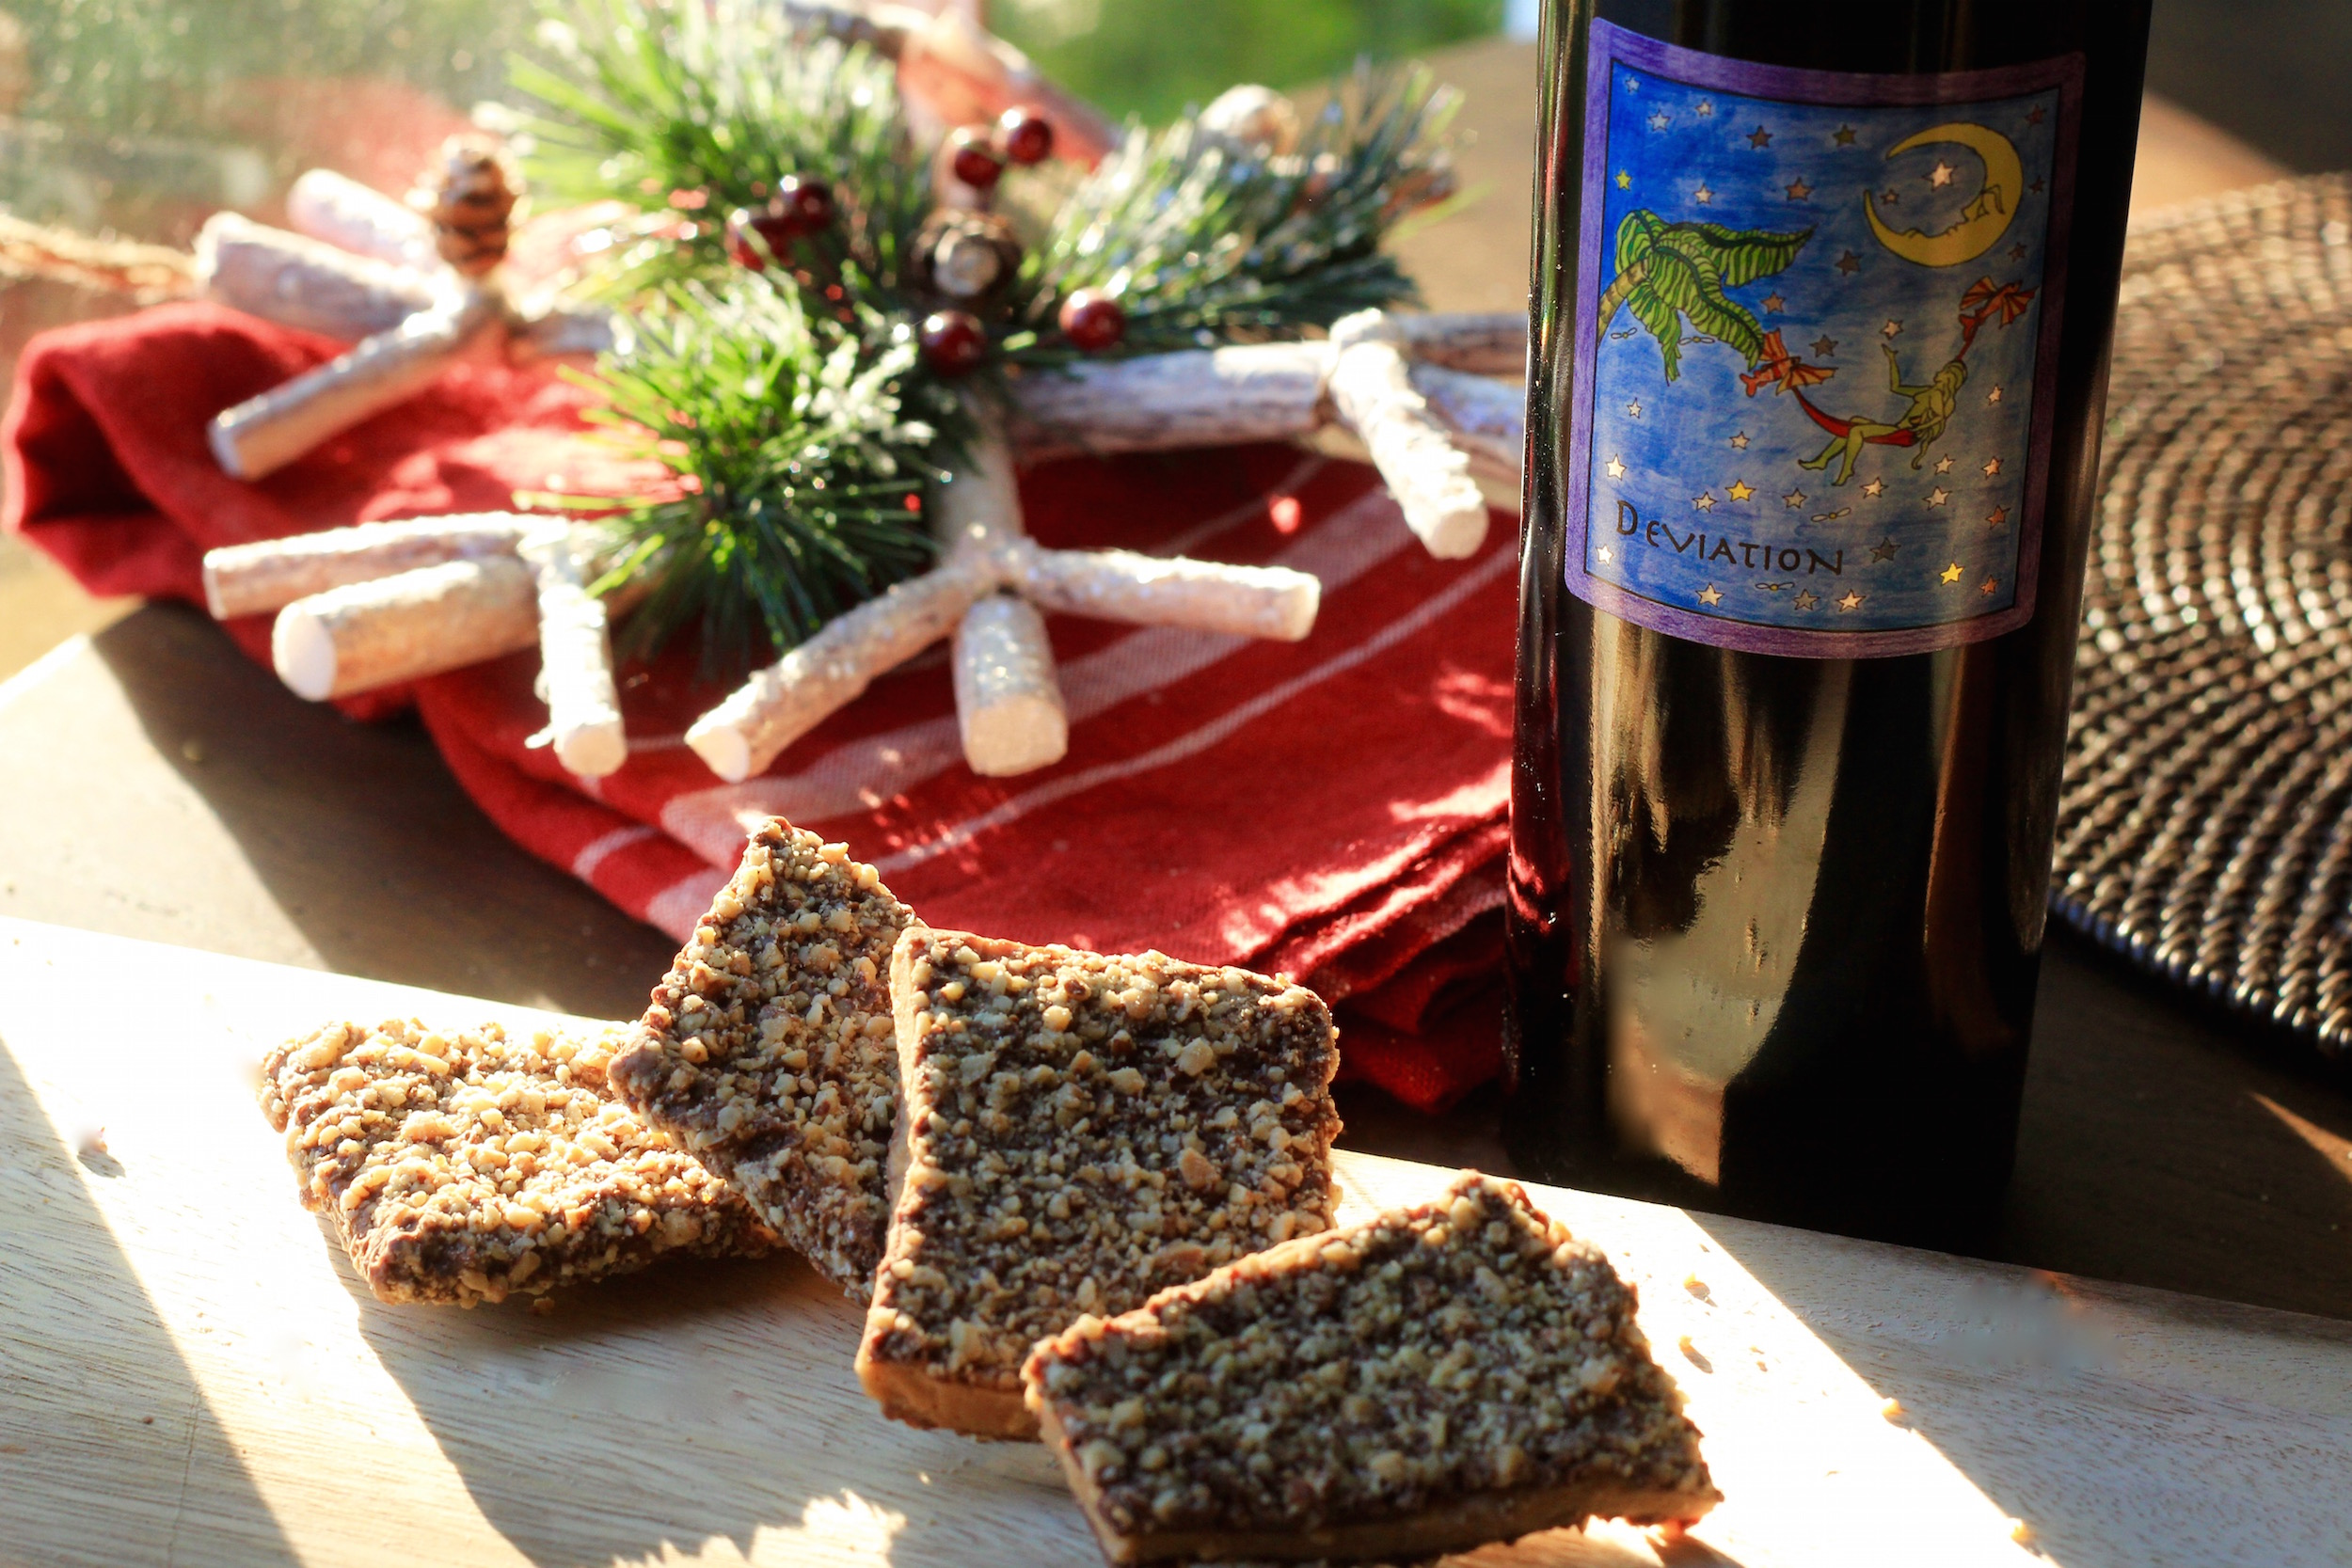 Pieces of English Almond Toffee on a table next to a bottle of Deviation Dessert Wine and Various Christmas Decor